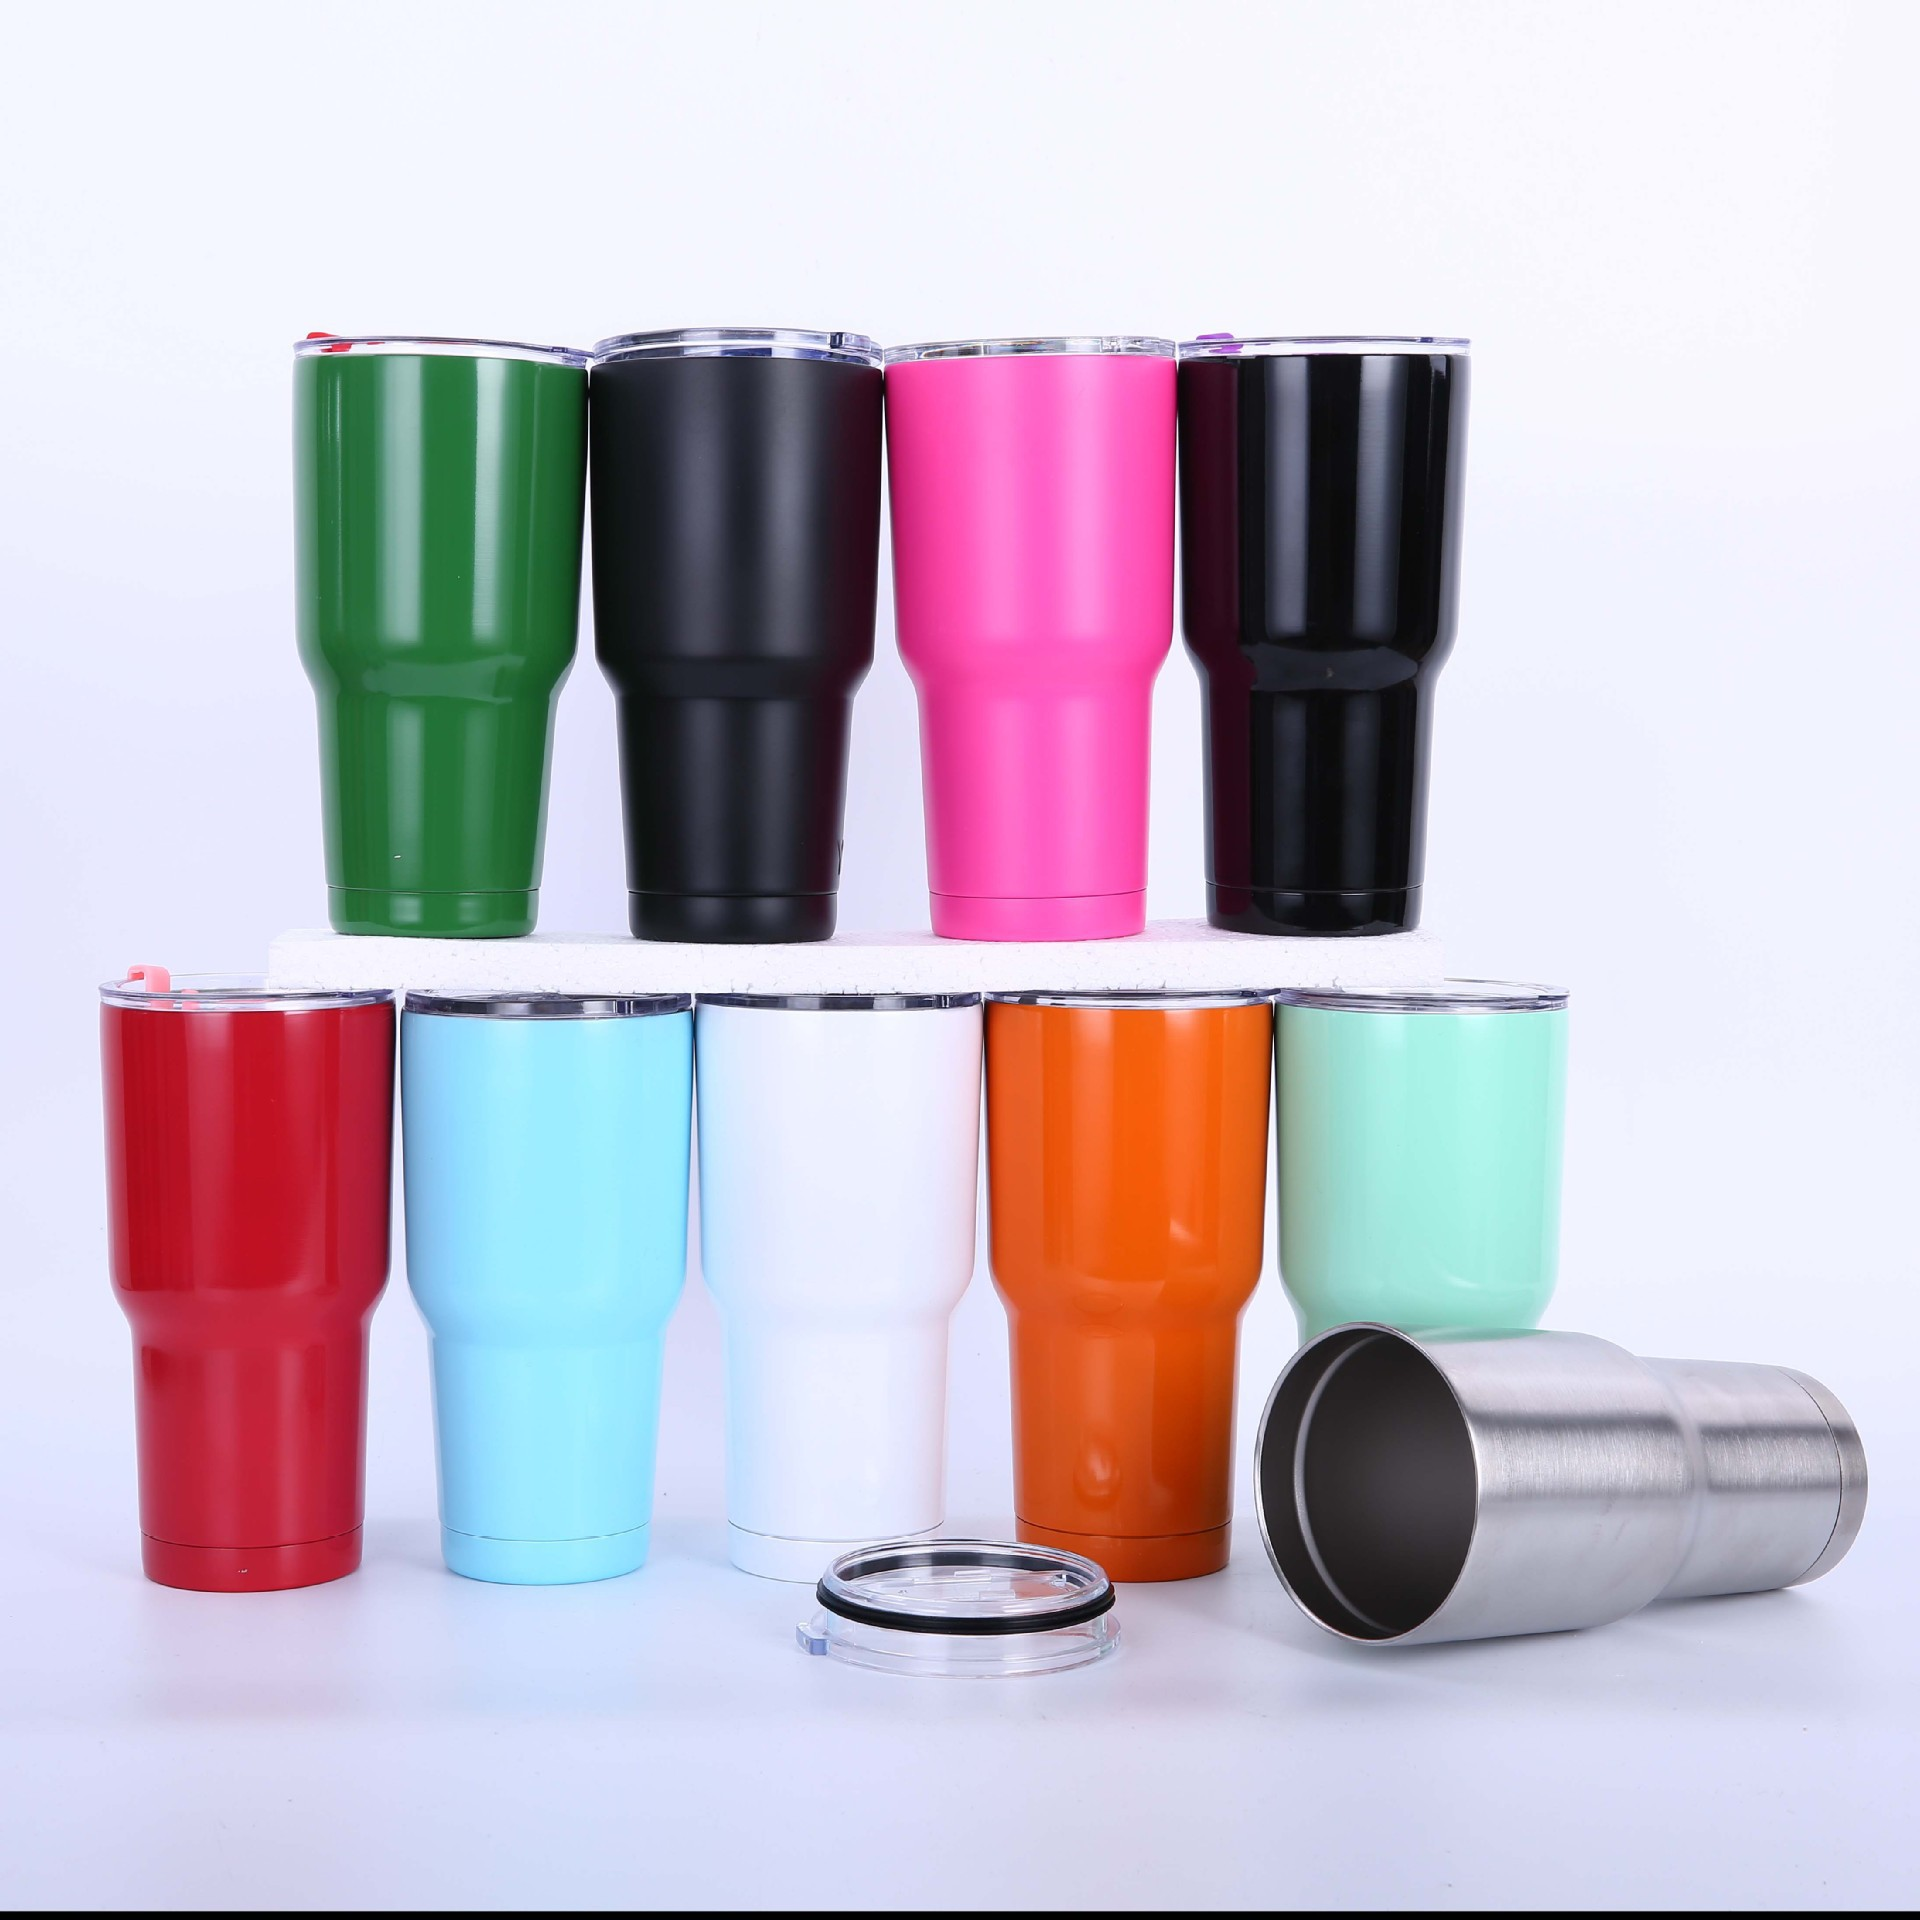 2019 Quick Seller 30OZ Stainless Steel Vacuum Insulated Mug